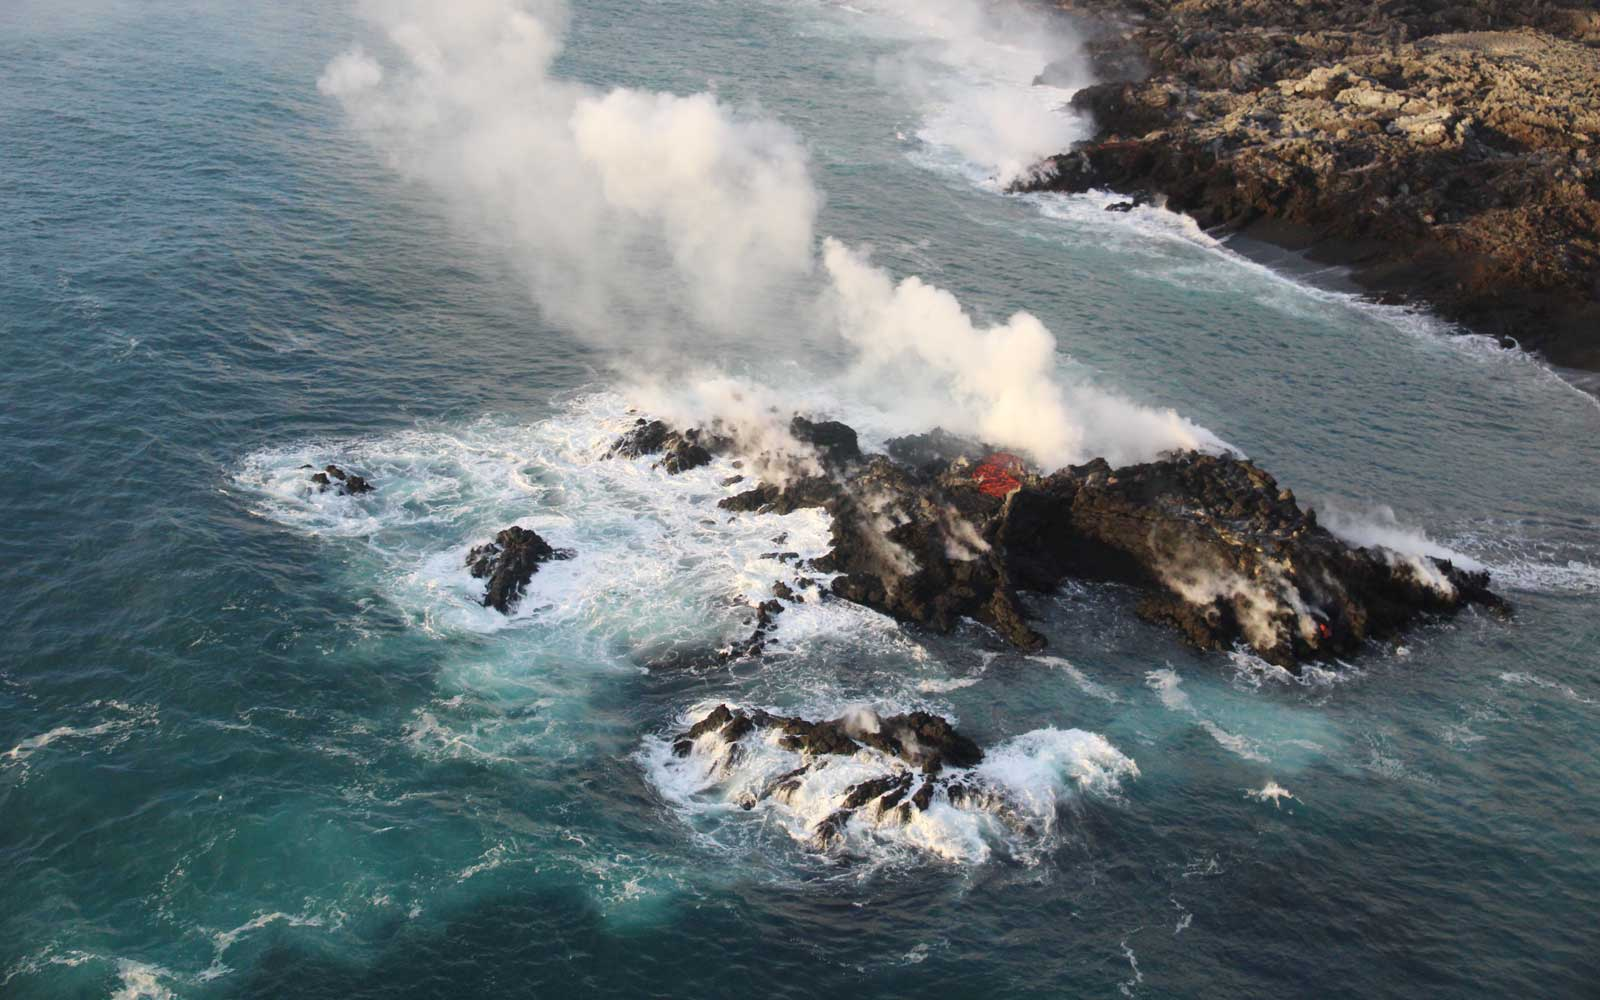 Tight shot of new island off the coast of Hawaii, formed by lava flowing into the ocean